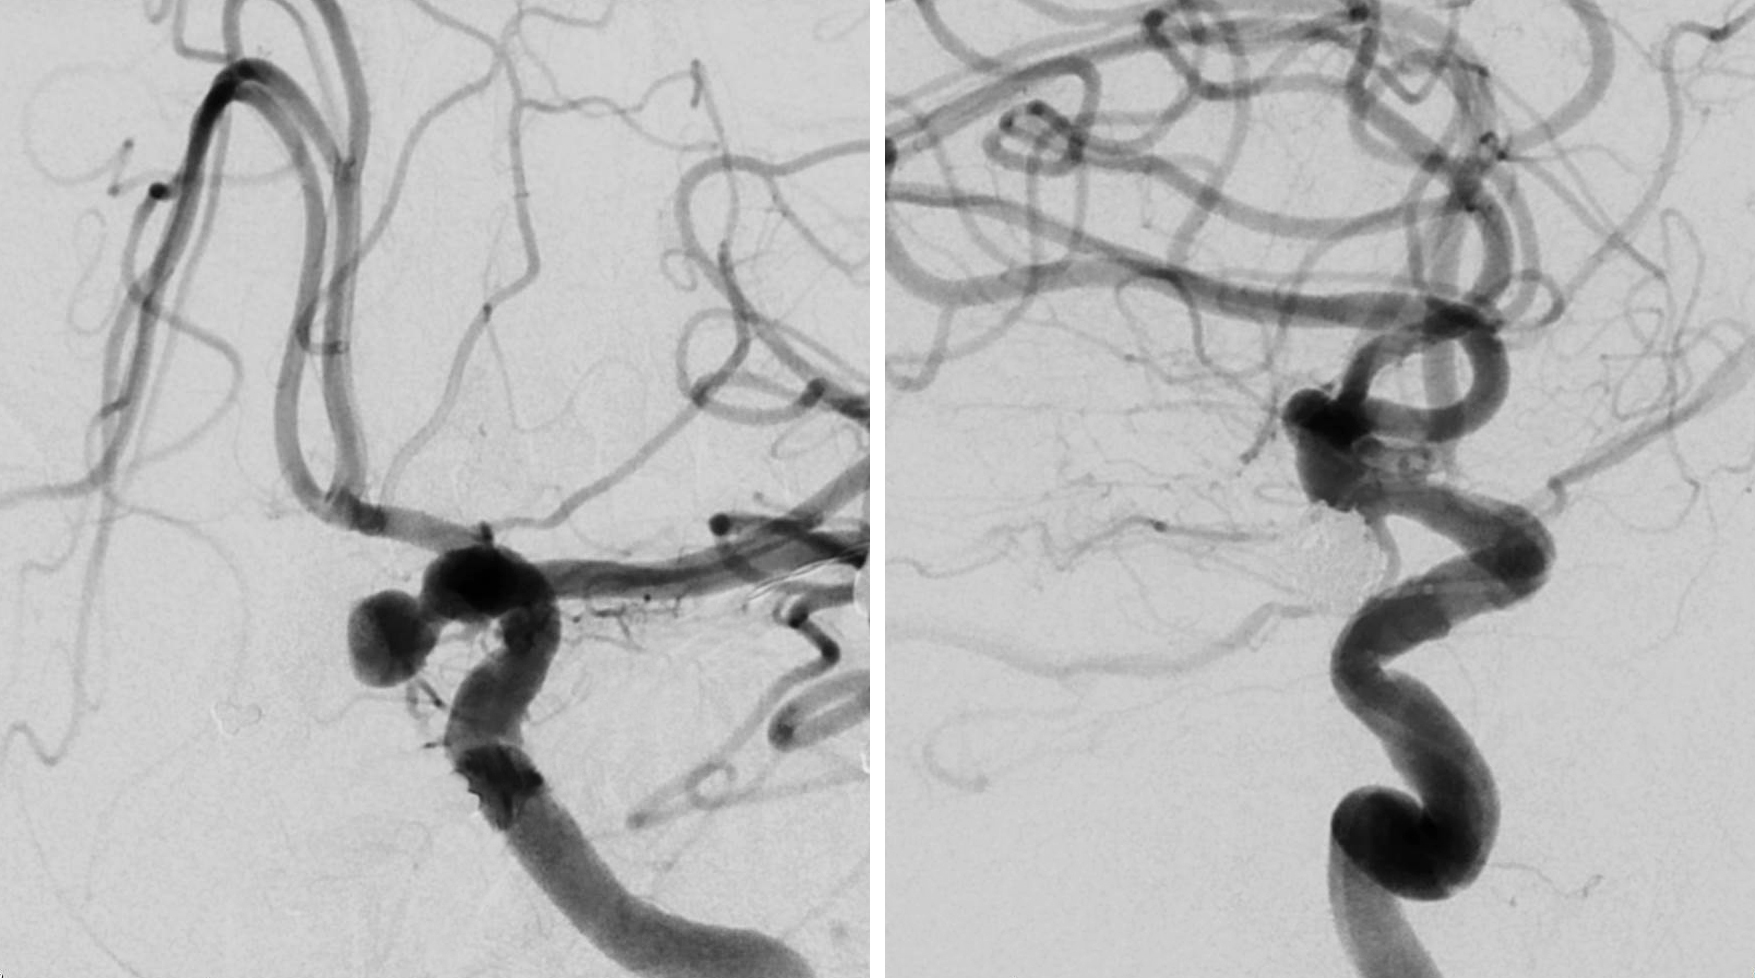 Figure 6: Preoperative (L) and postoperative (R) angiograms demonstrate the effective exclusion of the aneurysm with preservation of the PCoA.